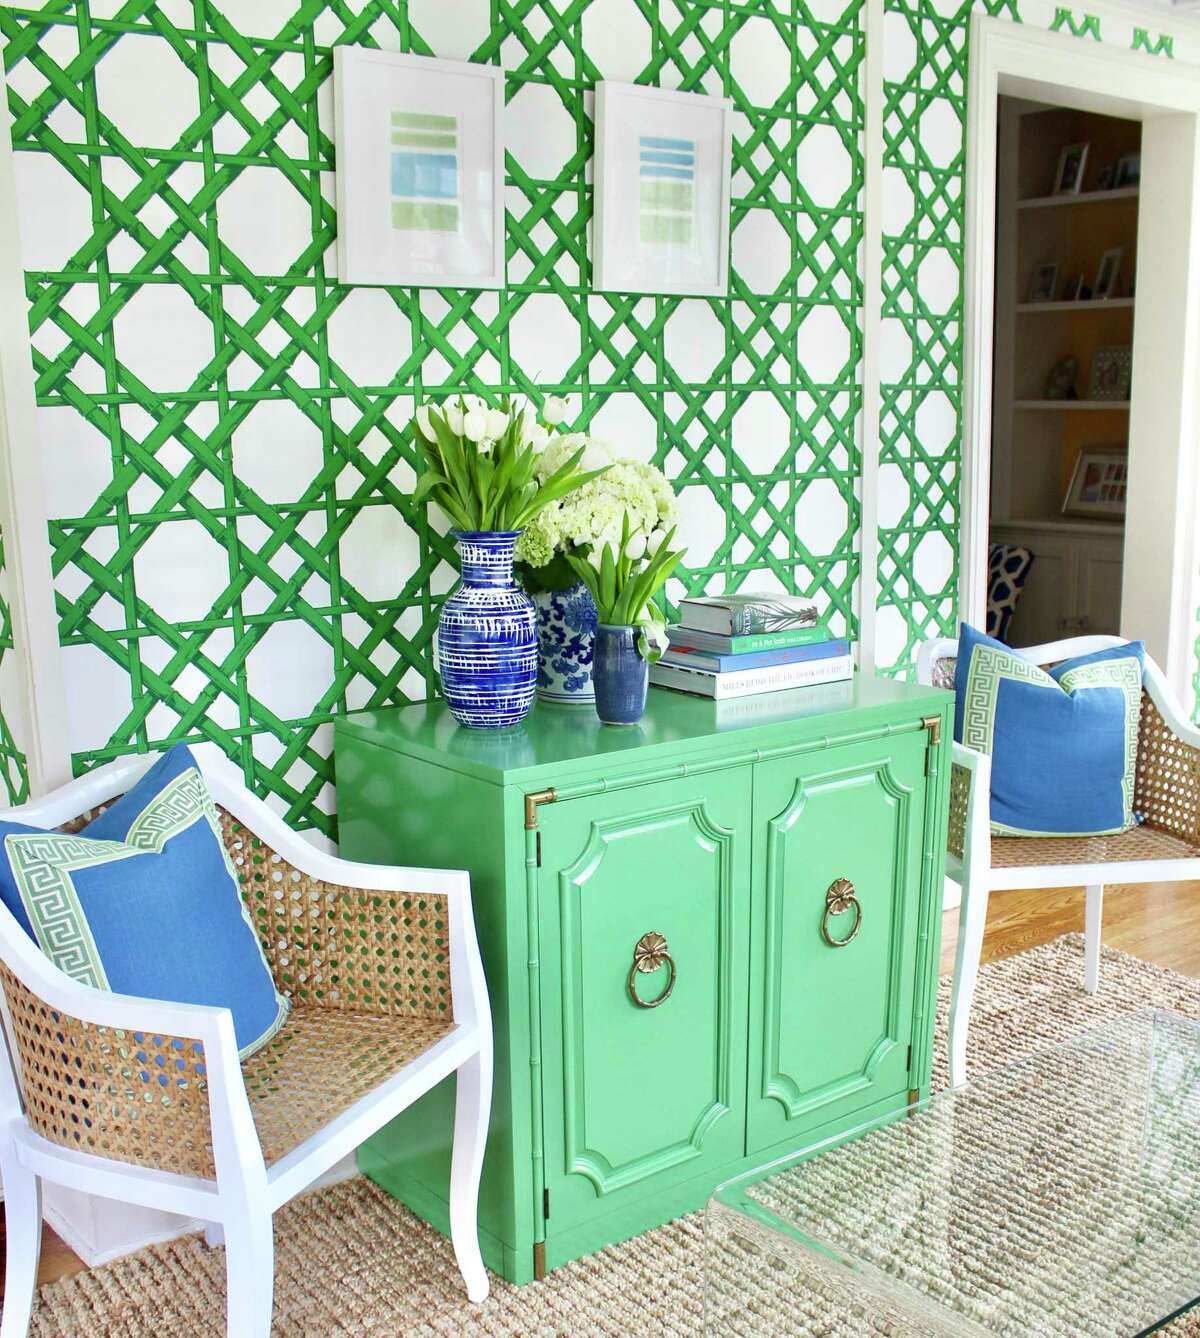 Blue and green are the standouts in this summer-inspired space, according to Kate Smith, owner of Kate Smith Interiors in Fairfield.